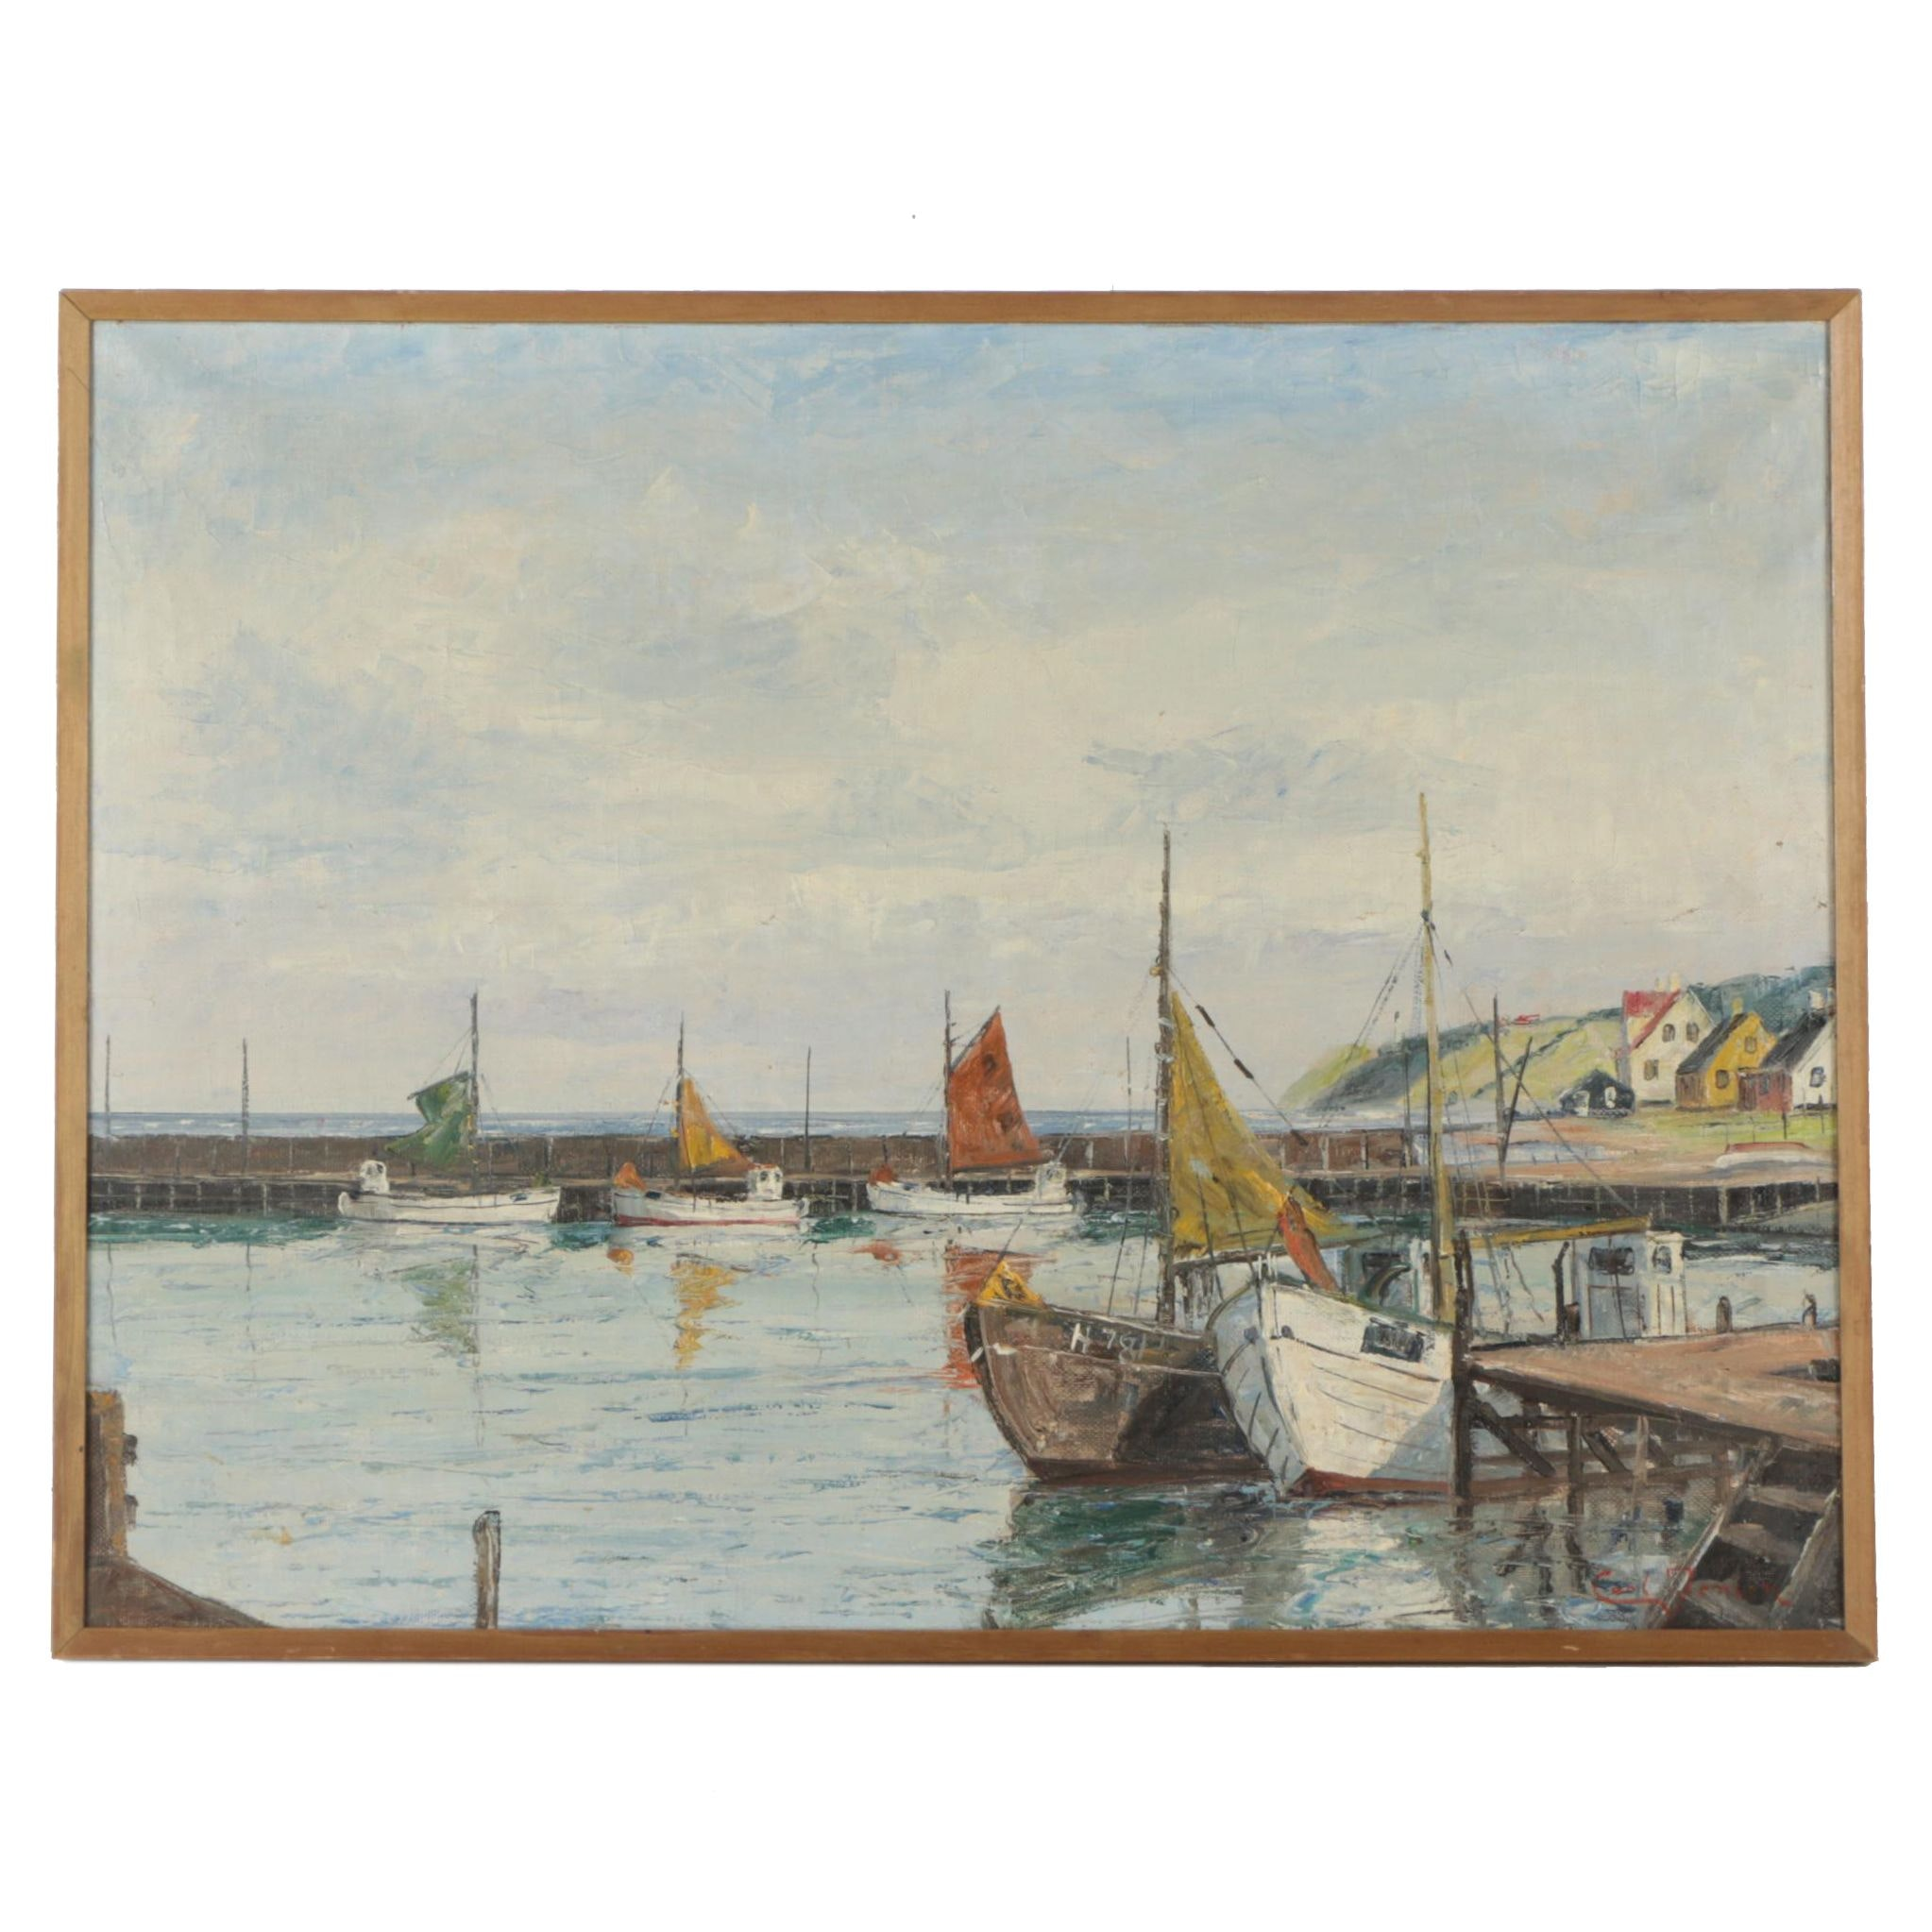 Carl Fenson Oil Painting of Docked Boats